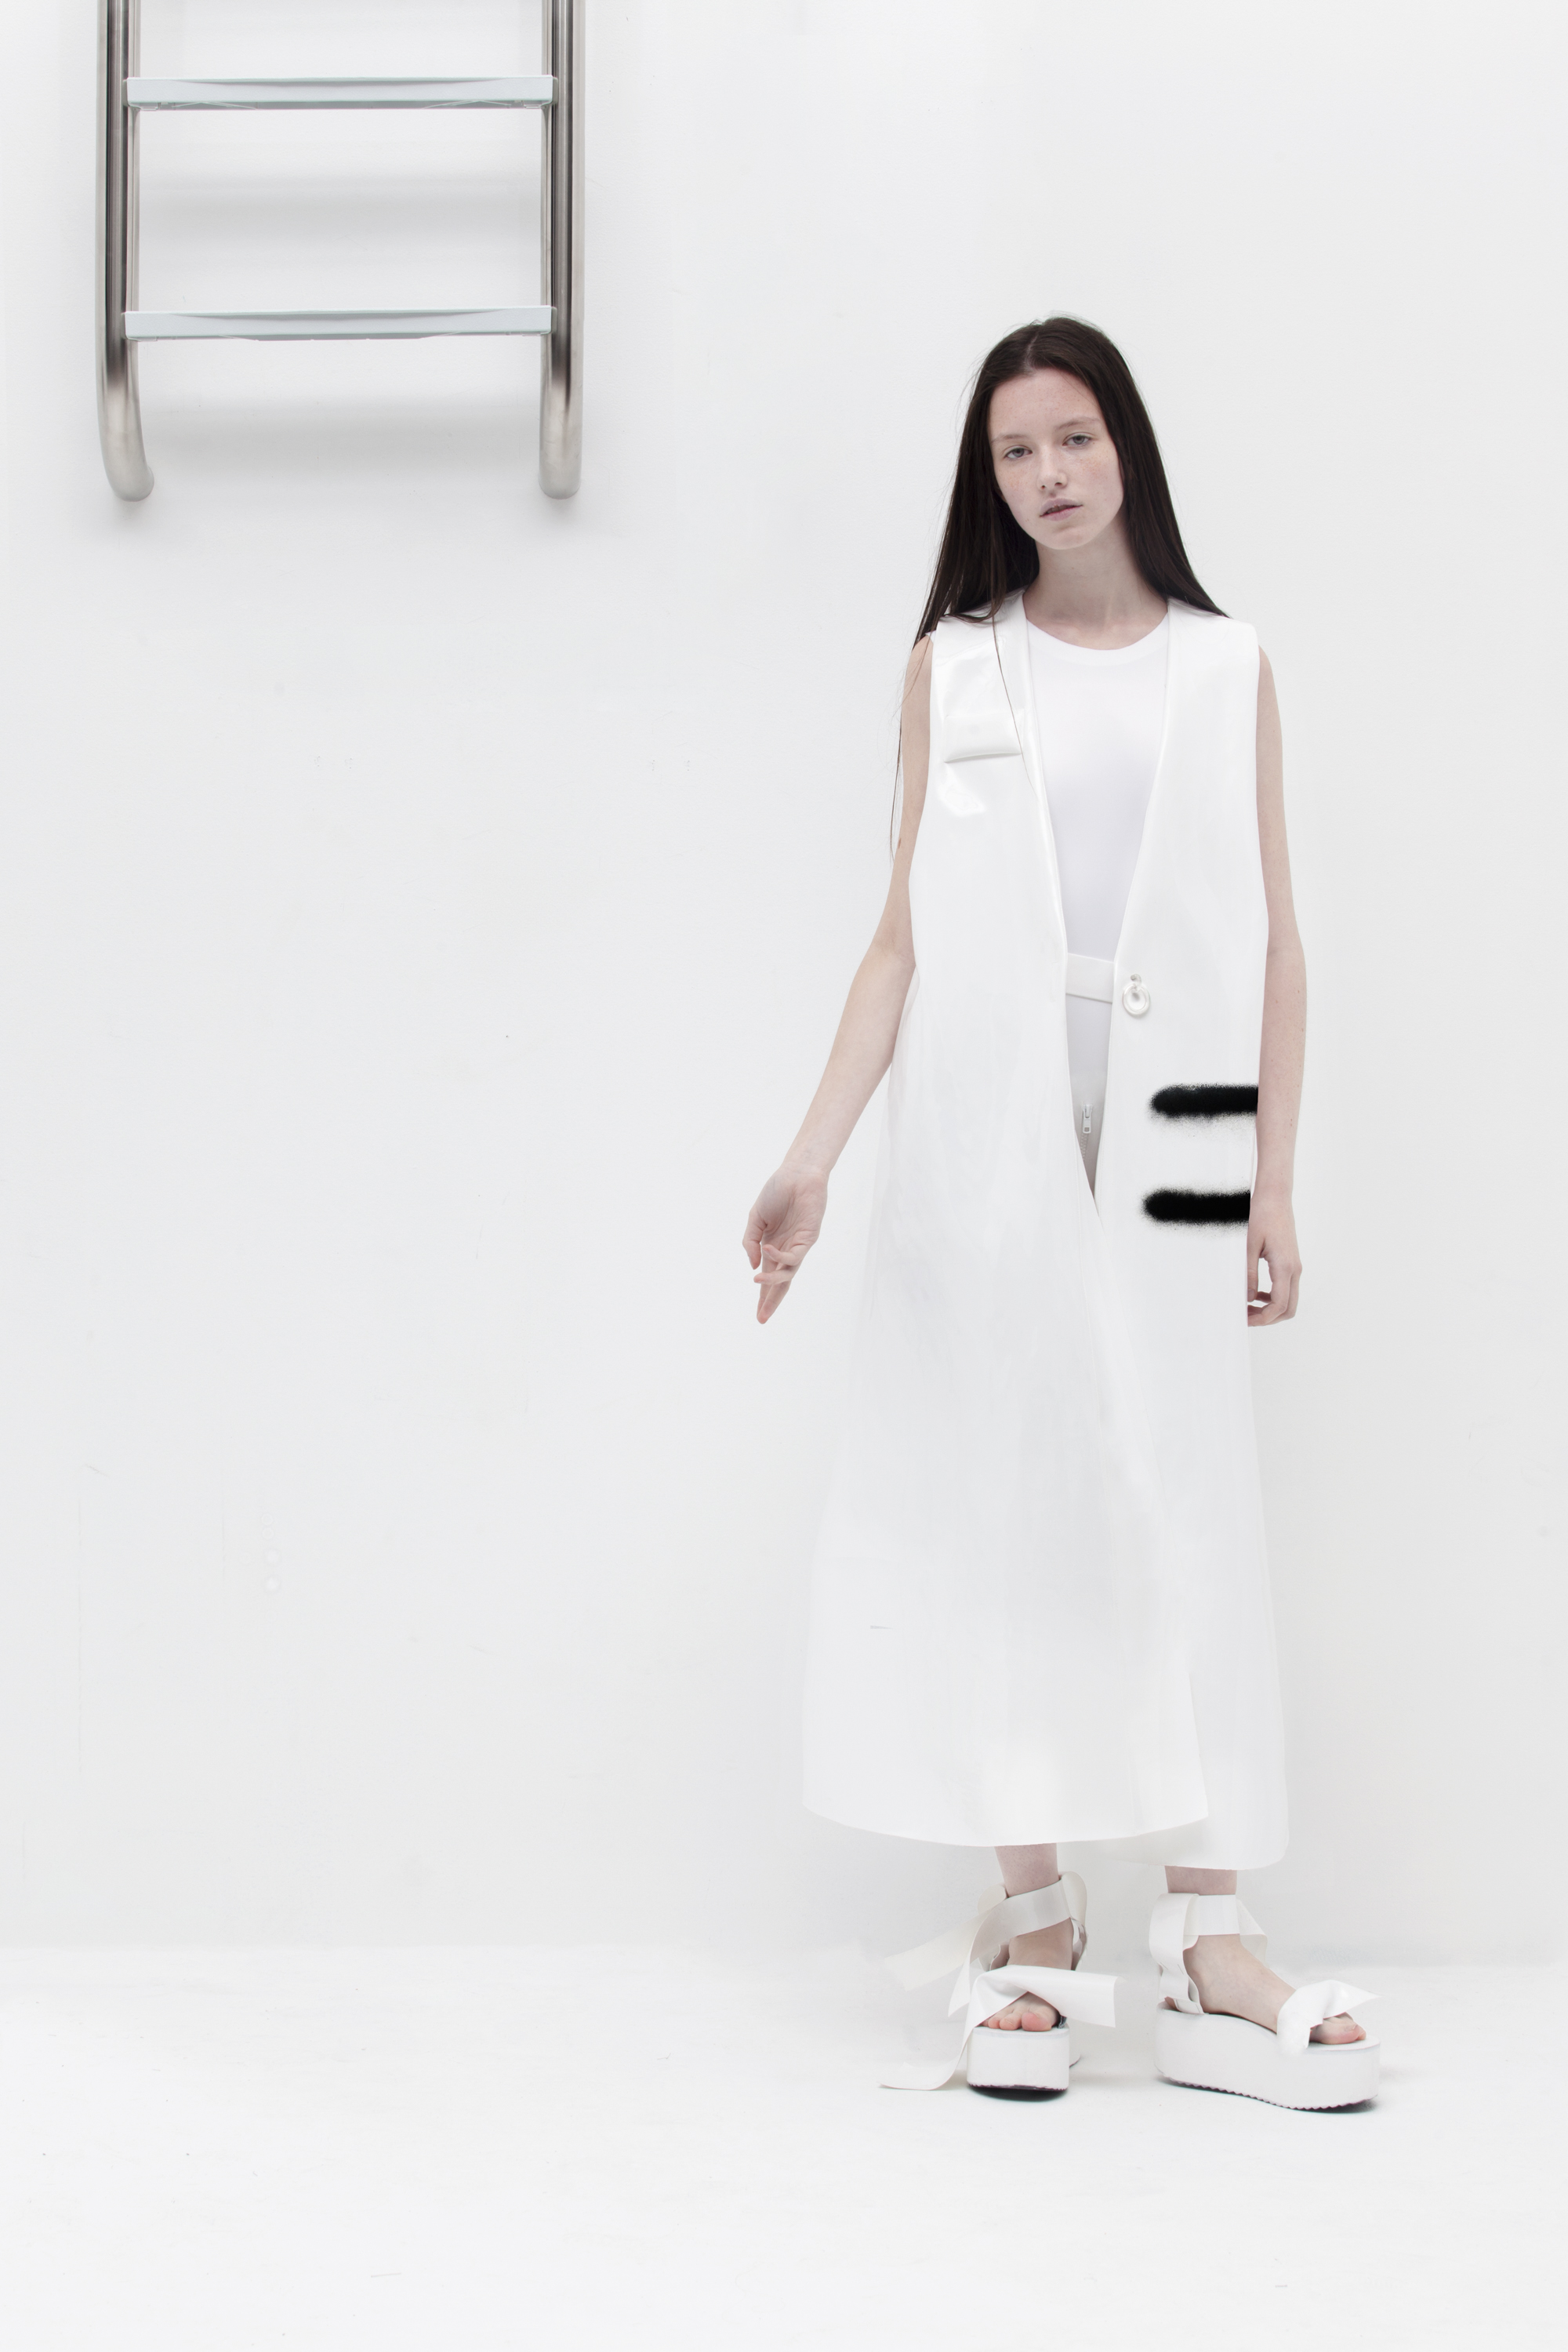 Melitta Baumeister SS16 Ph. Paul Jung Look -11.jpg